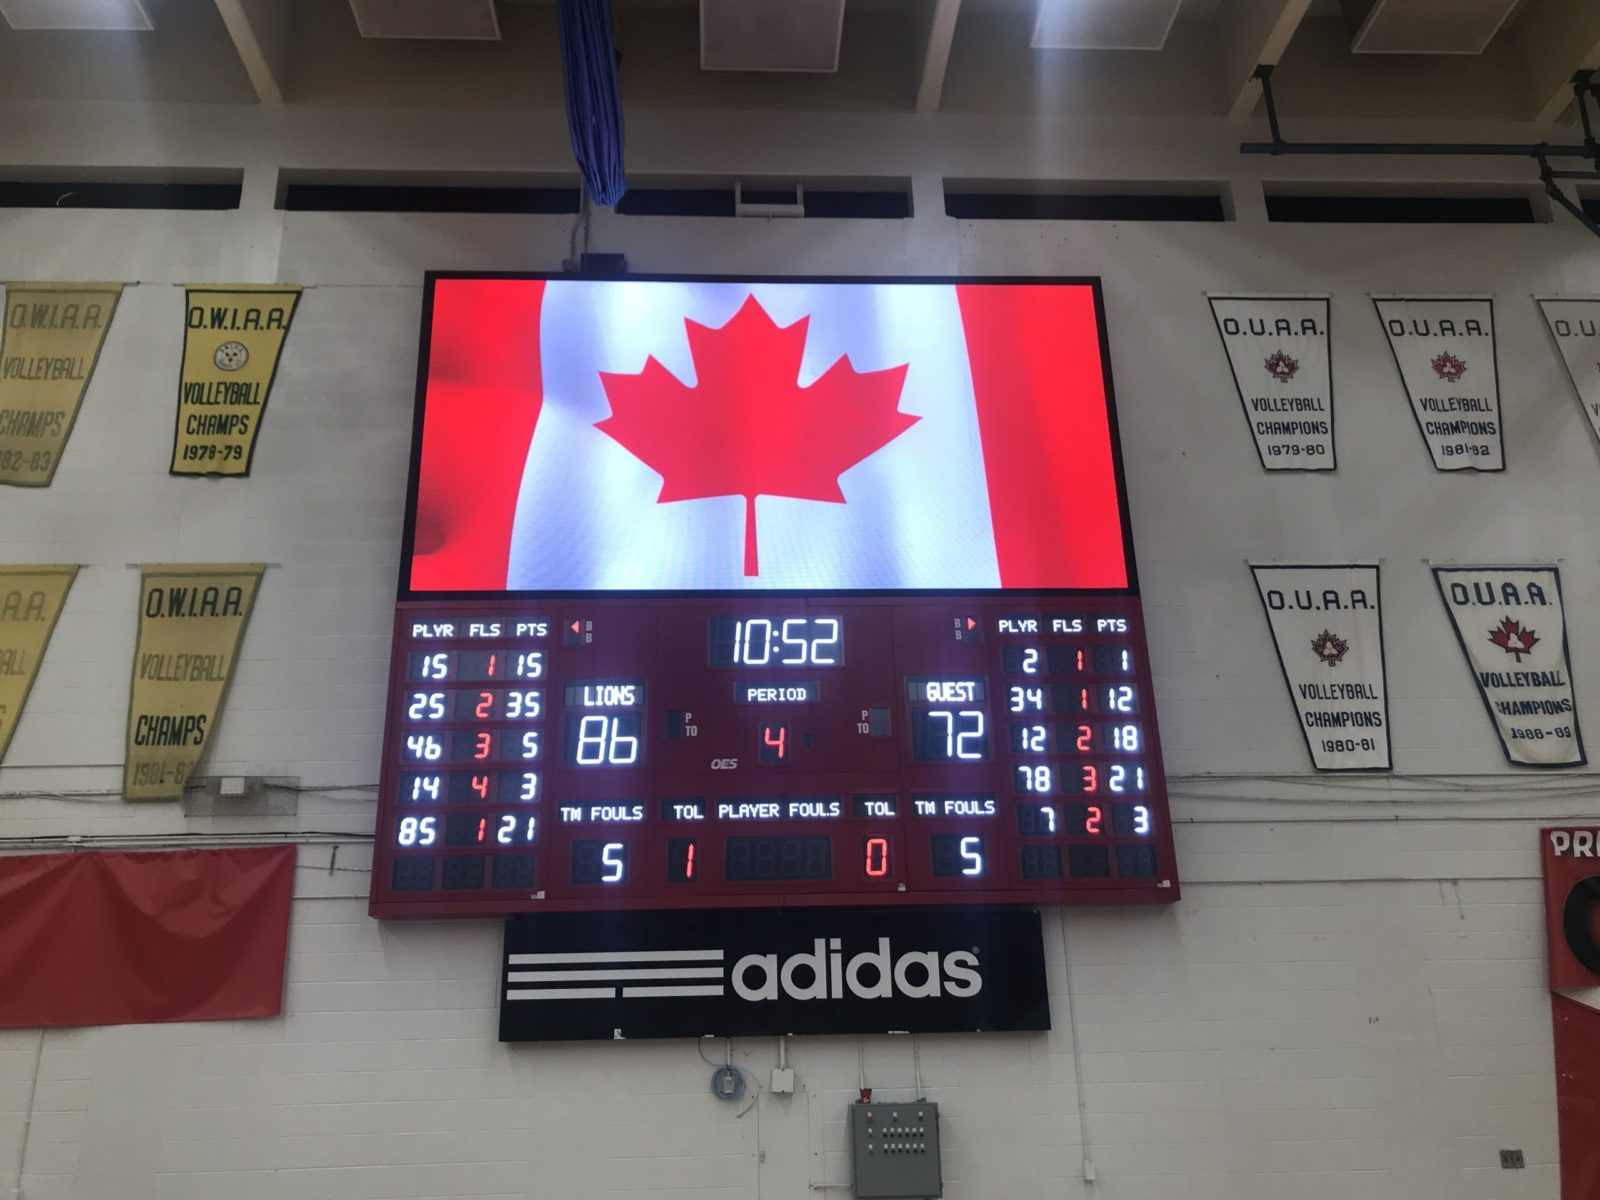 An Indoor scoreboard basketball scoreboard with an LED screen in above.